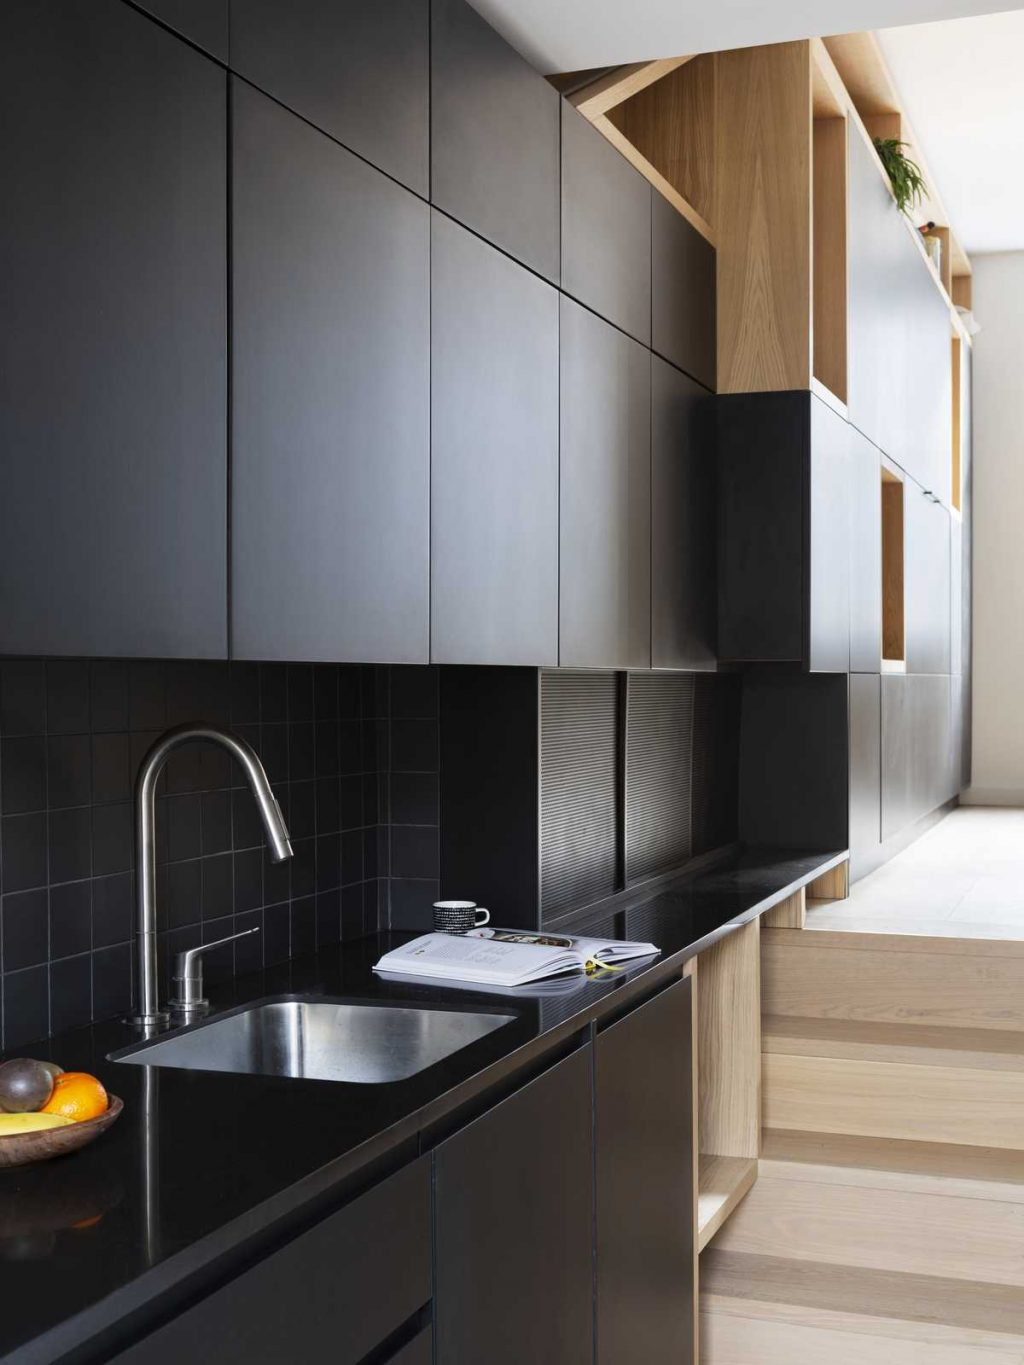 Conversion of a single-family dwelling by MATA Architects